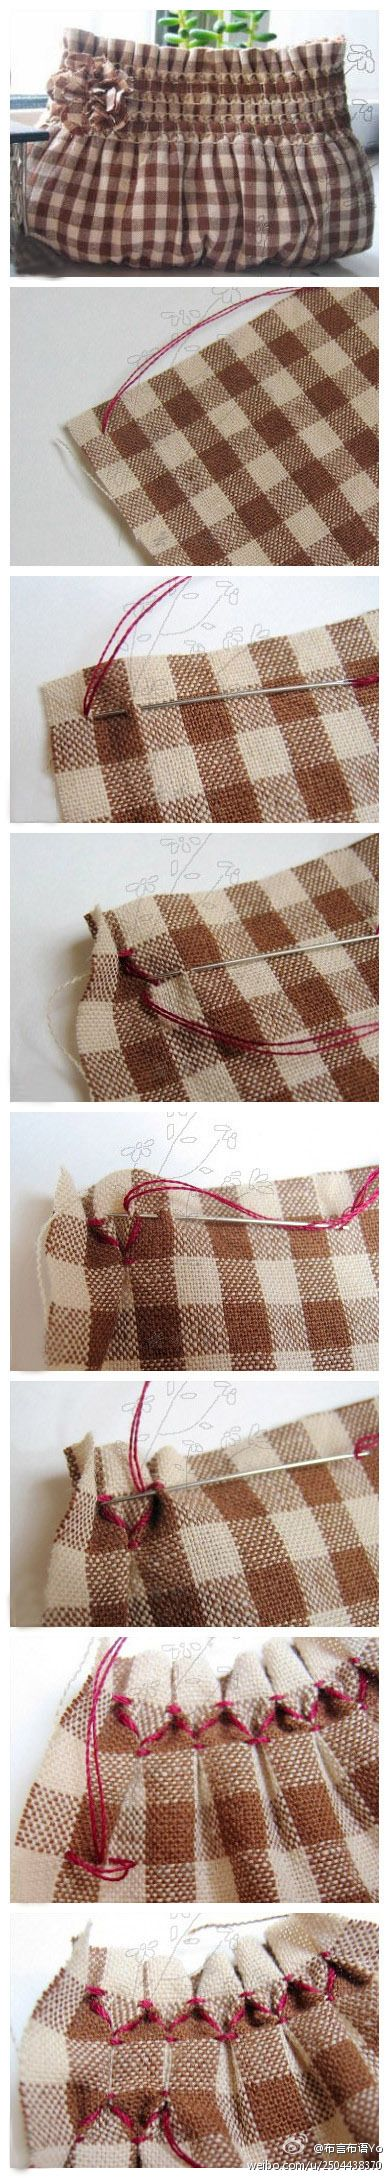 just a few pictures to show how the smocking is done. Cute!